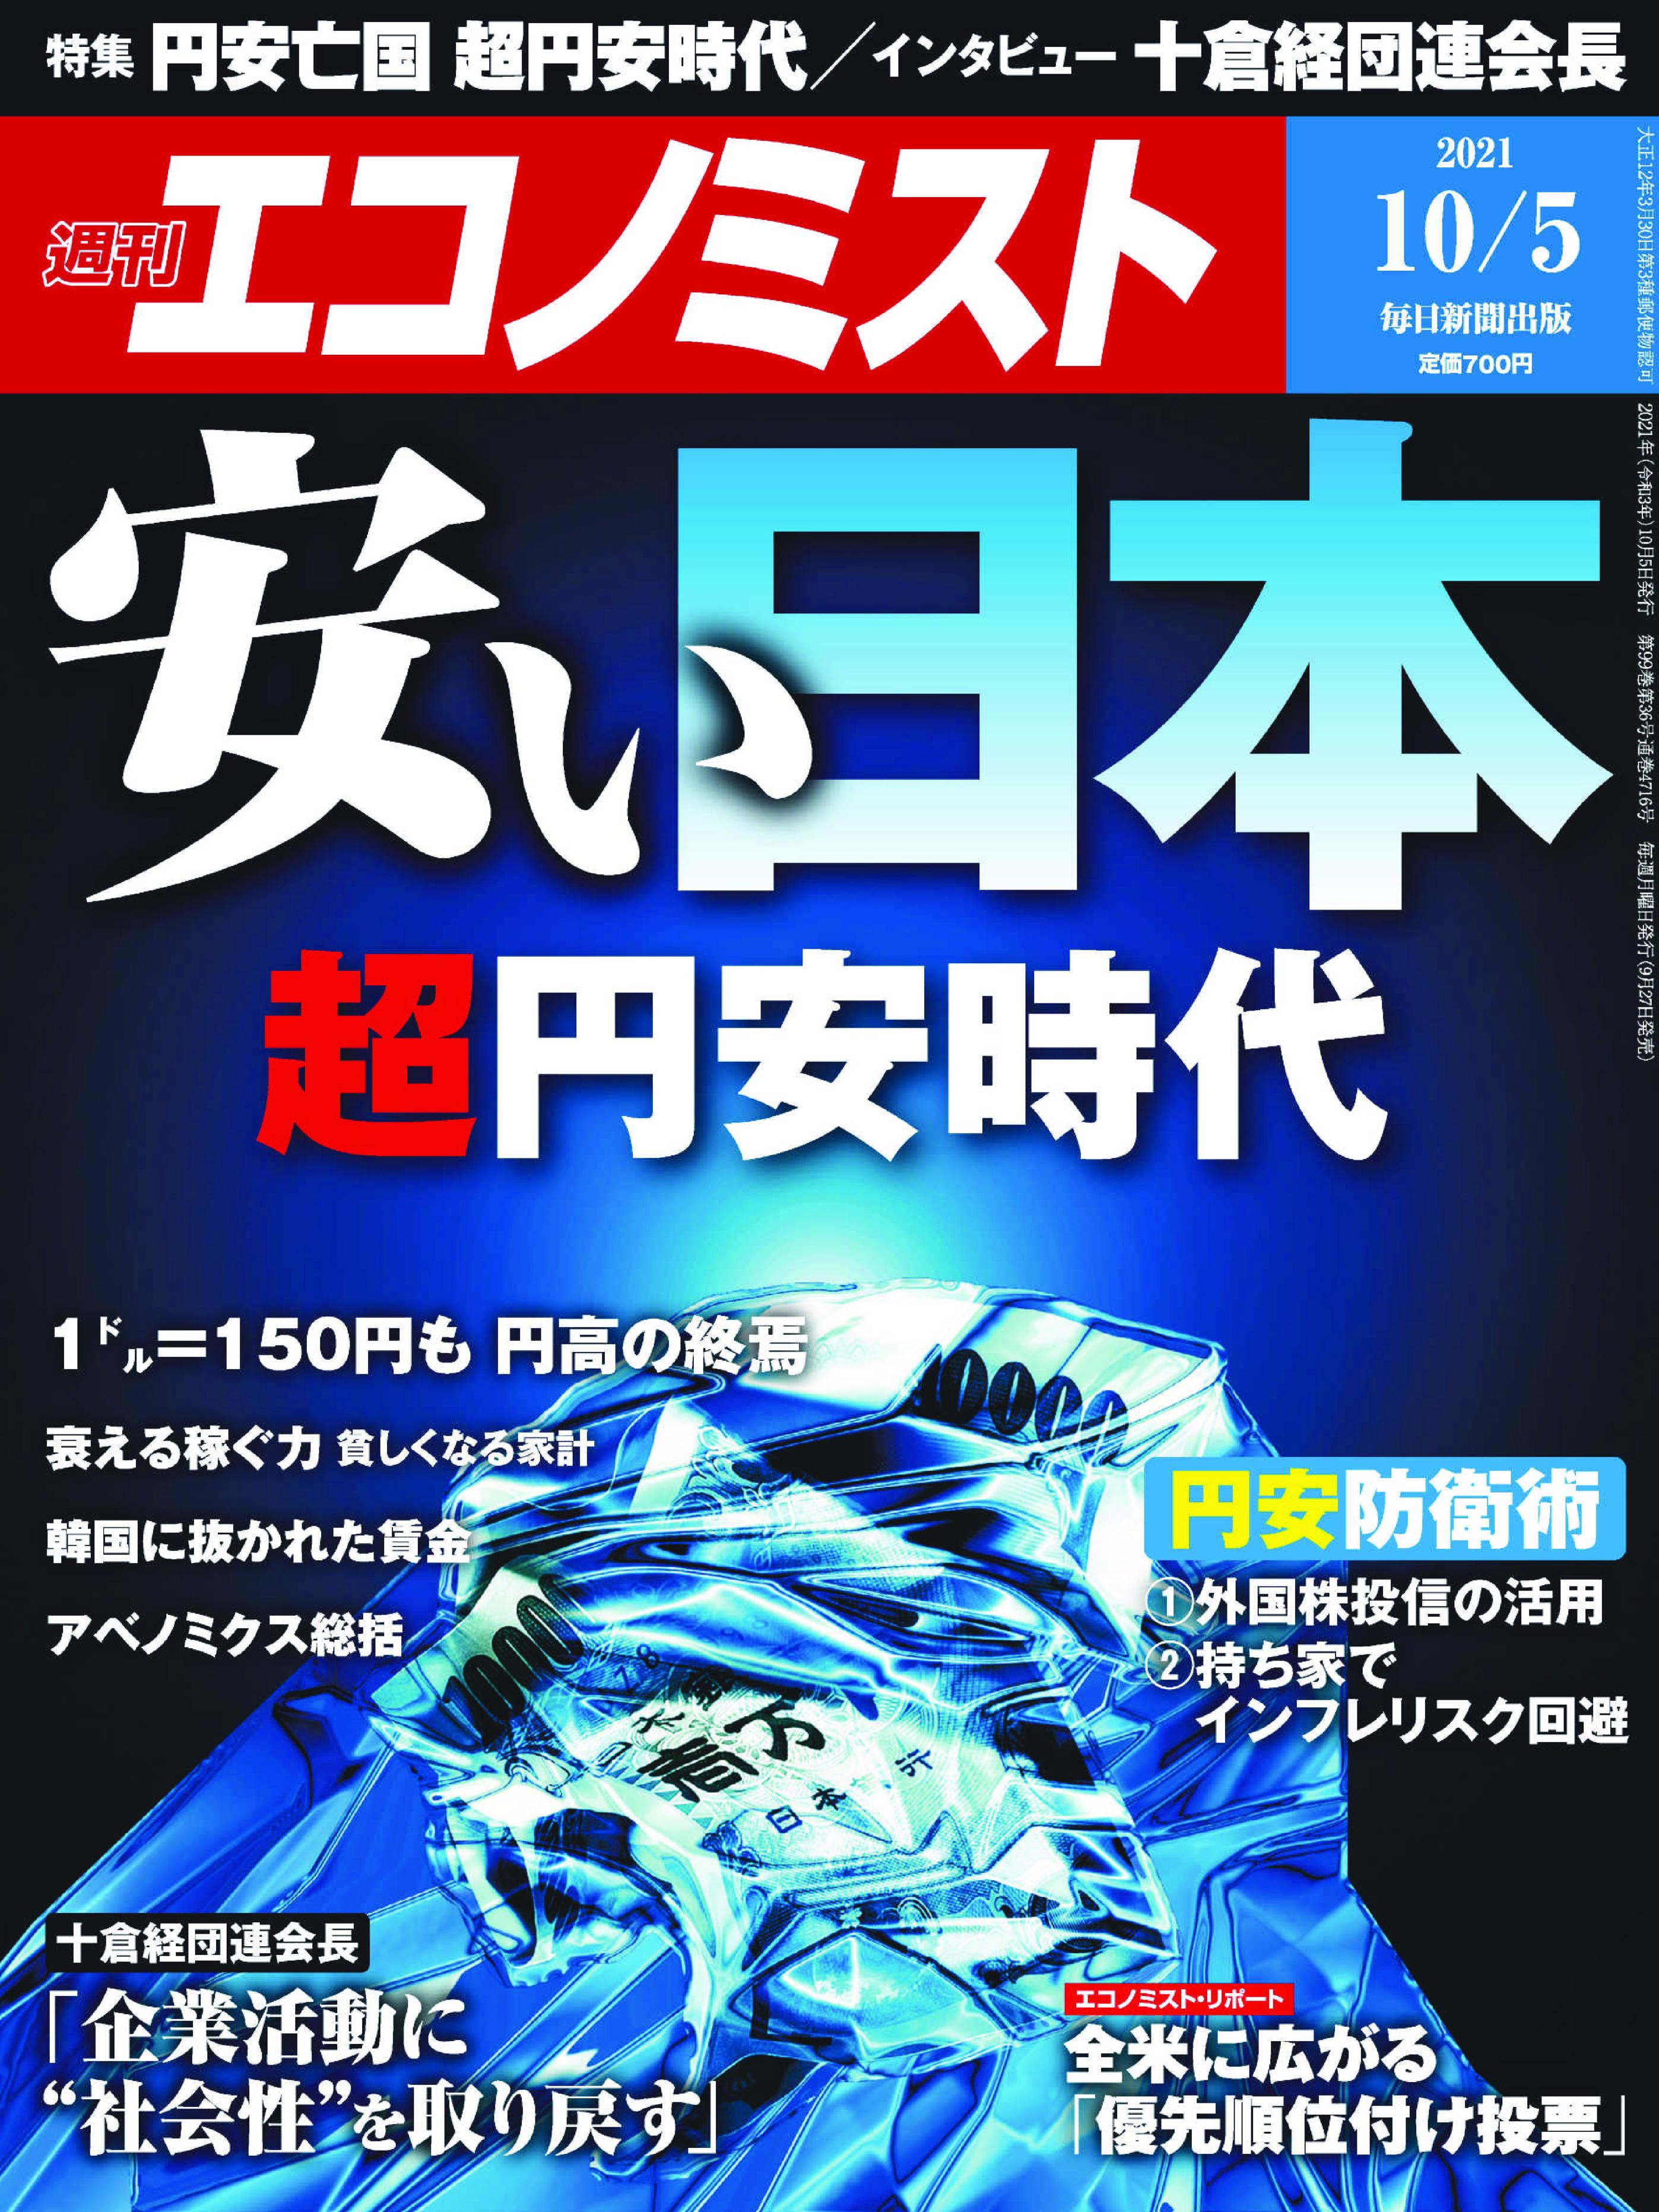 Weekly Economist 週刊エコノミスト – 21 9月 2021